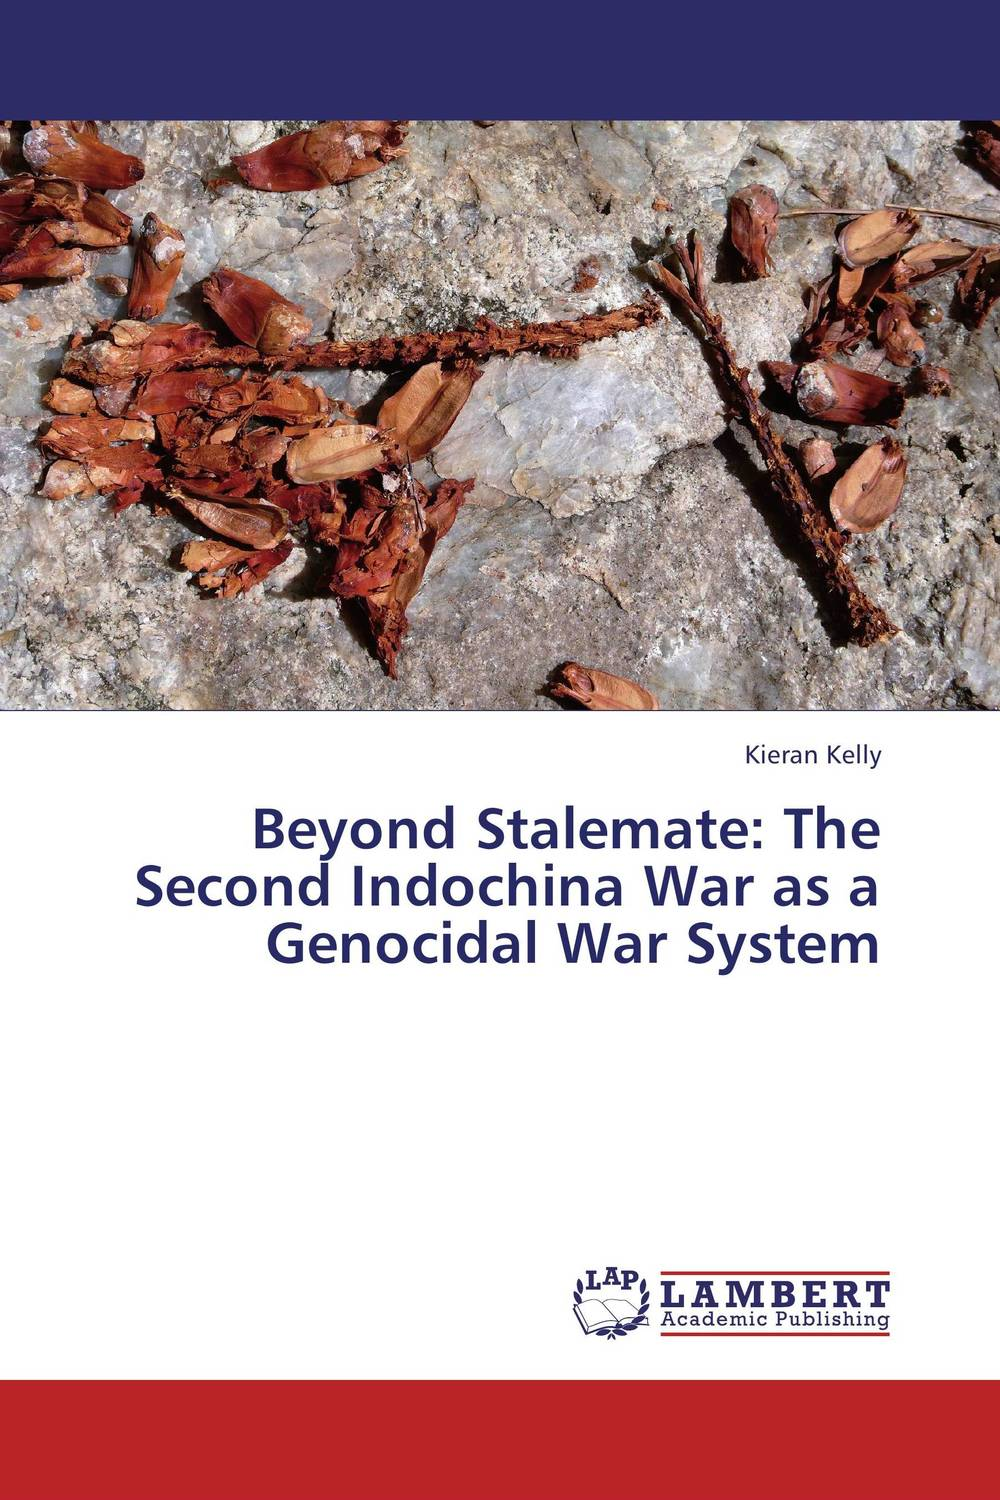 Beyond Stalemate: The Second Indochina War as a Genocidal War System alison janet koper the development of an effective wind energy regime in nova scotia